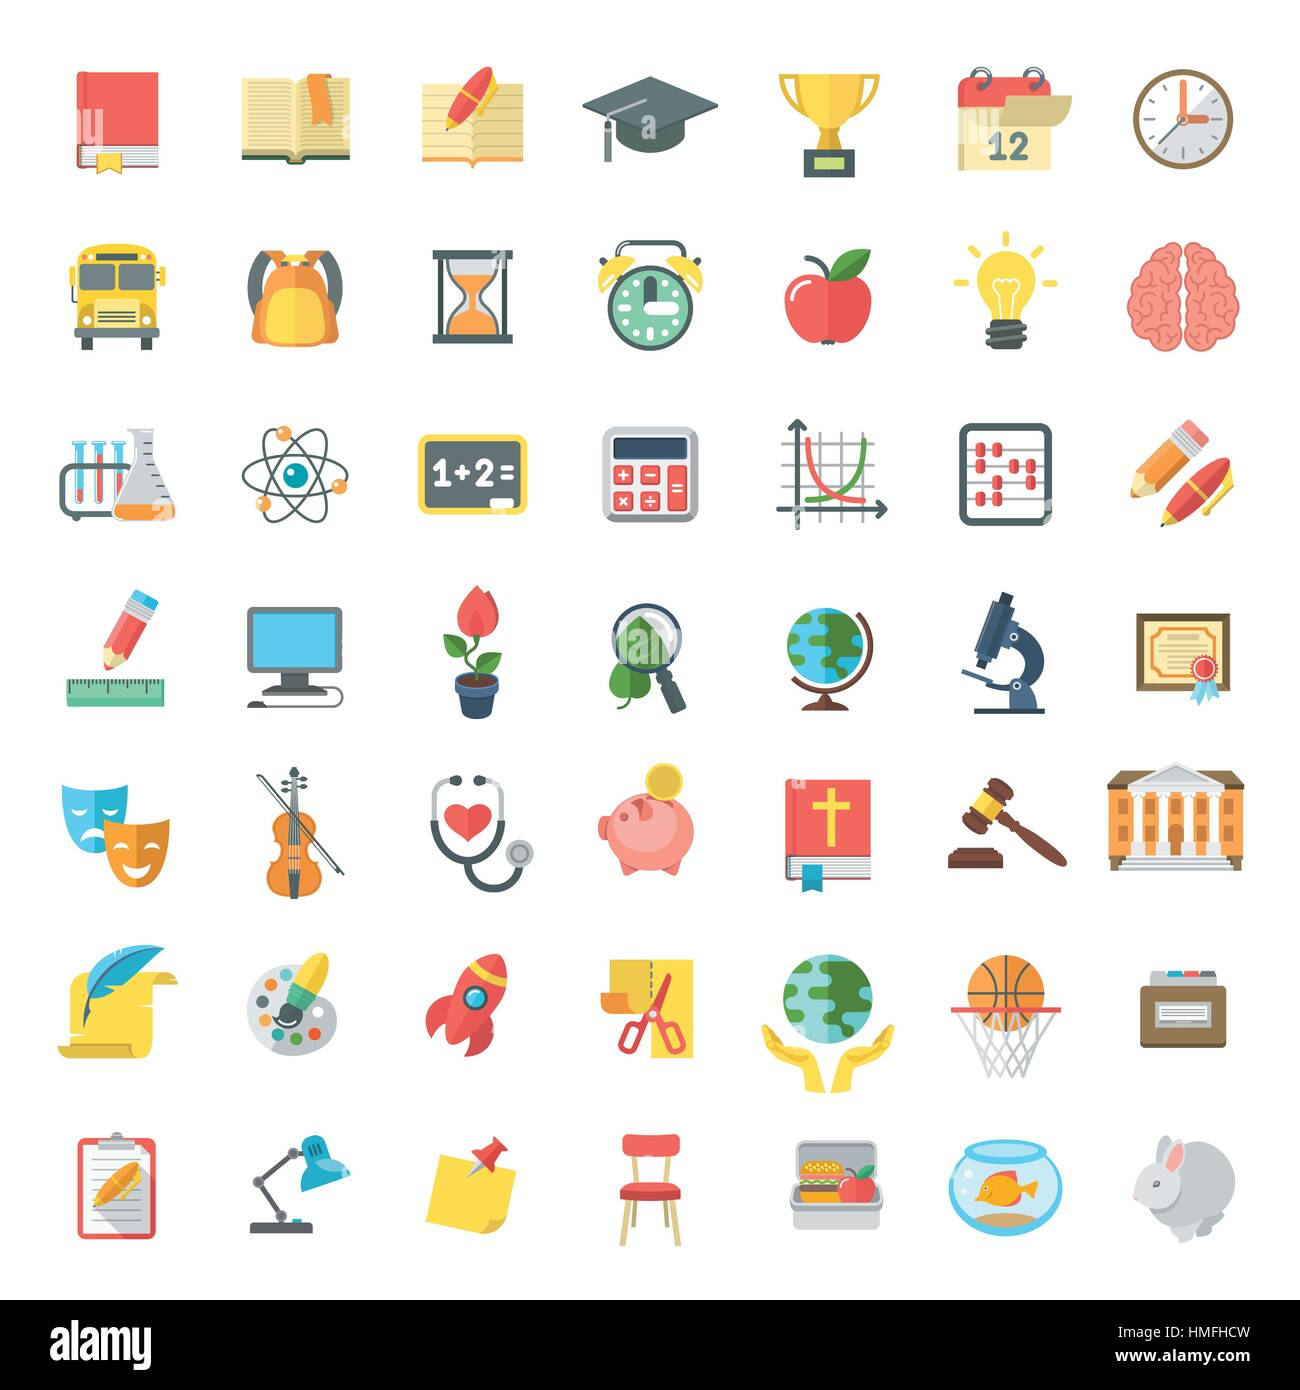 Set of modern flat vector icons of school subjects, activities, education and science symbols isolated on white. - Stock Vector